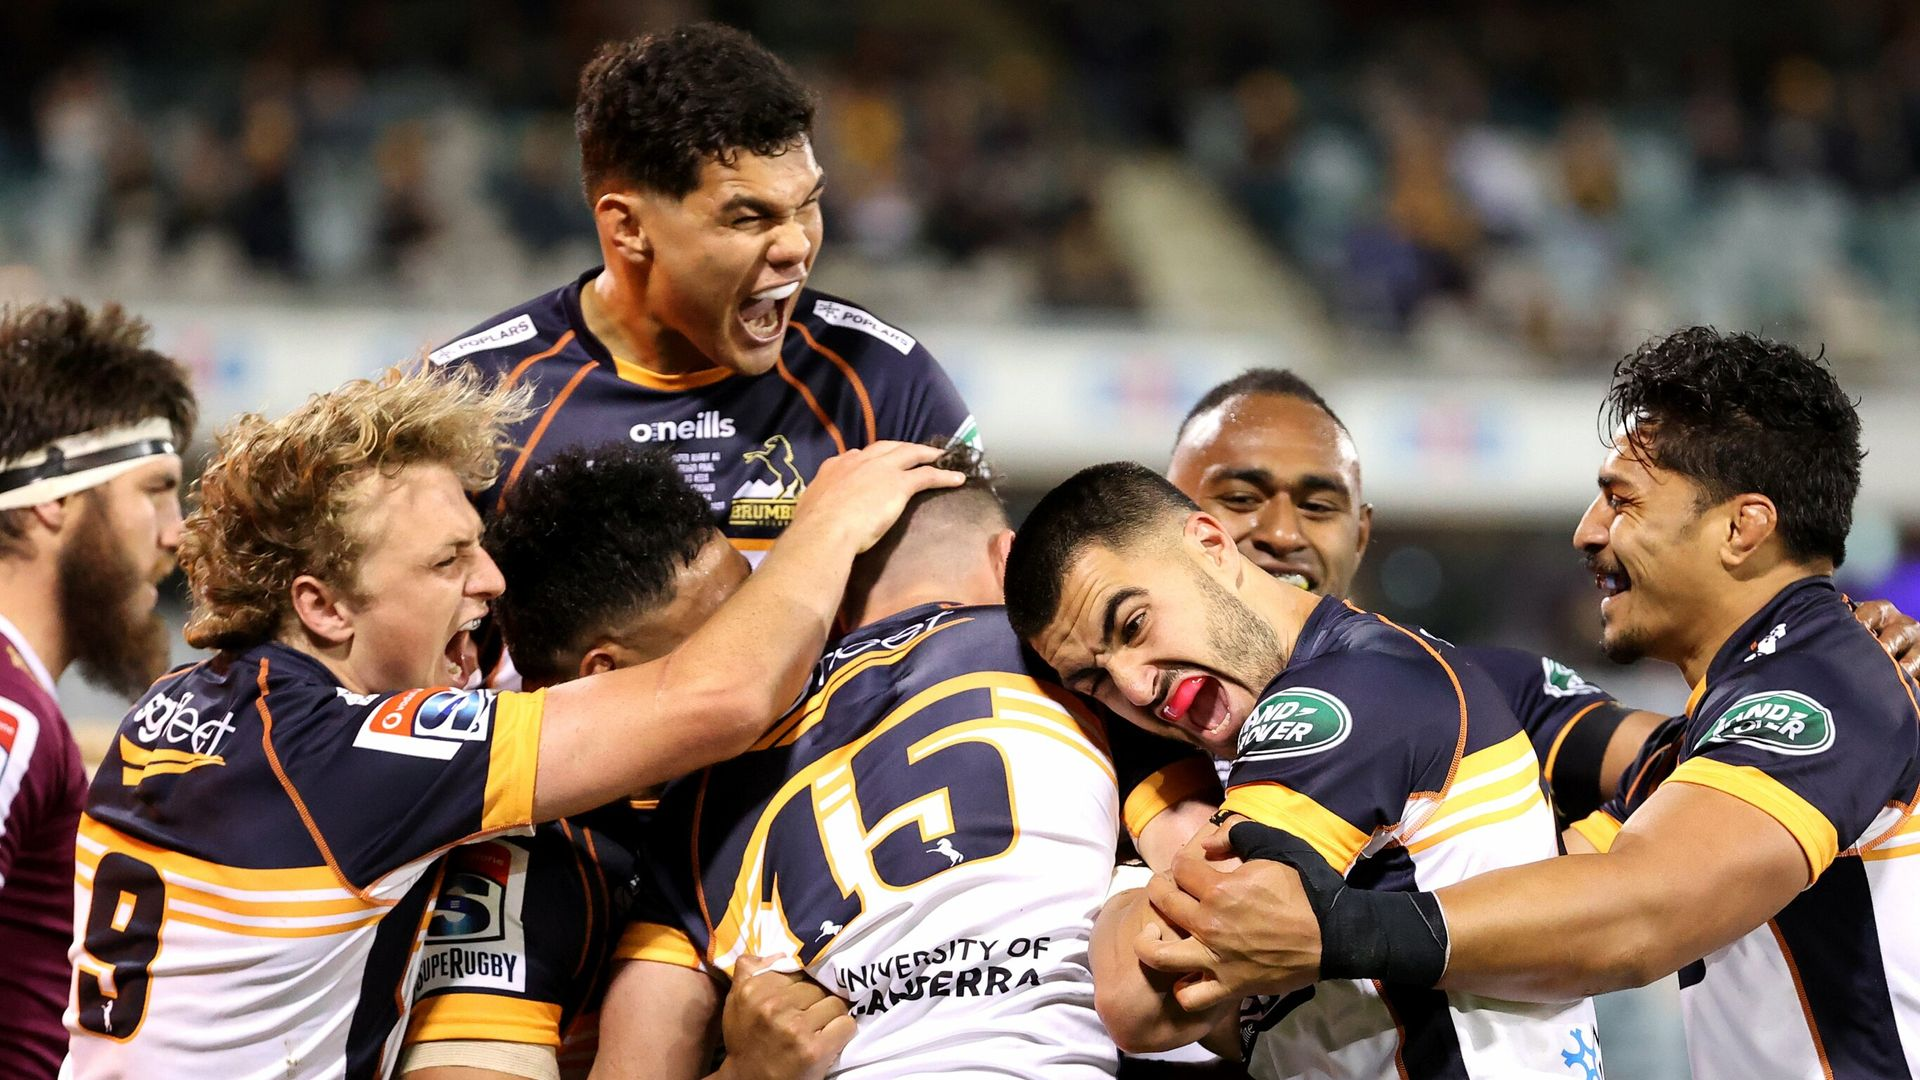 Brumbies hang on to clinch Super Rugby AU title - sky sports